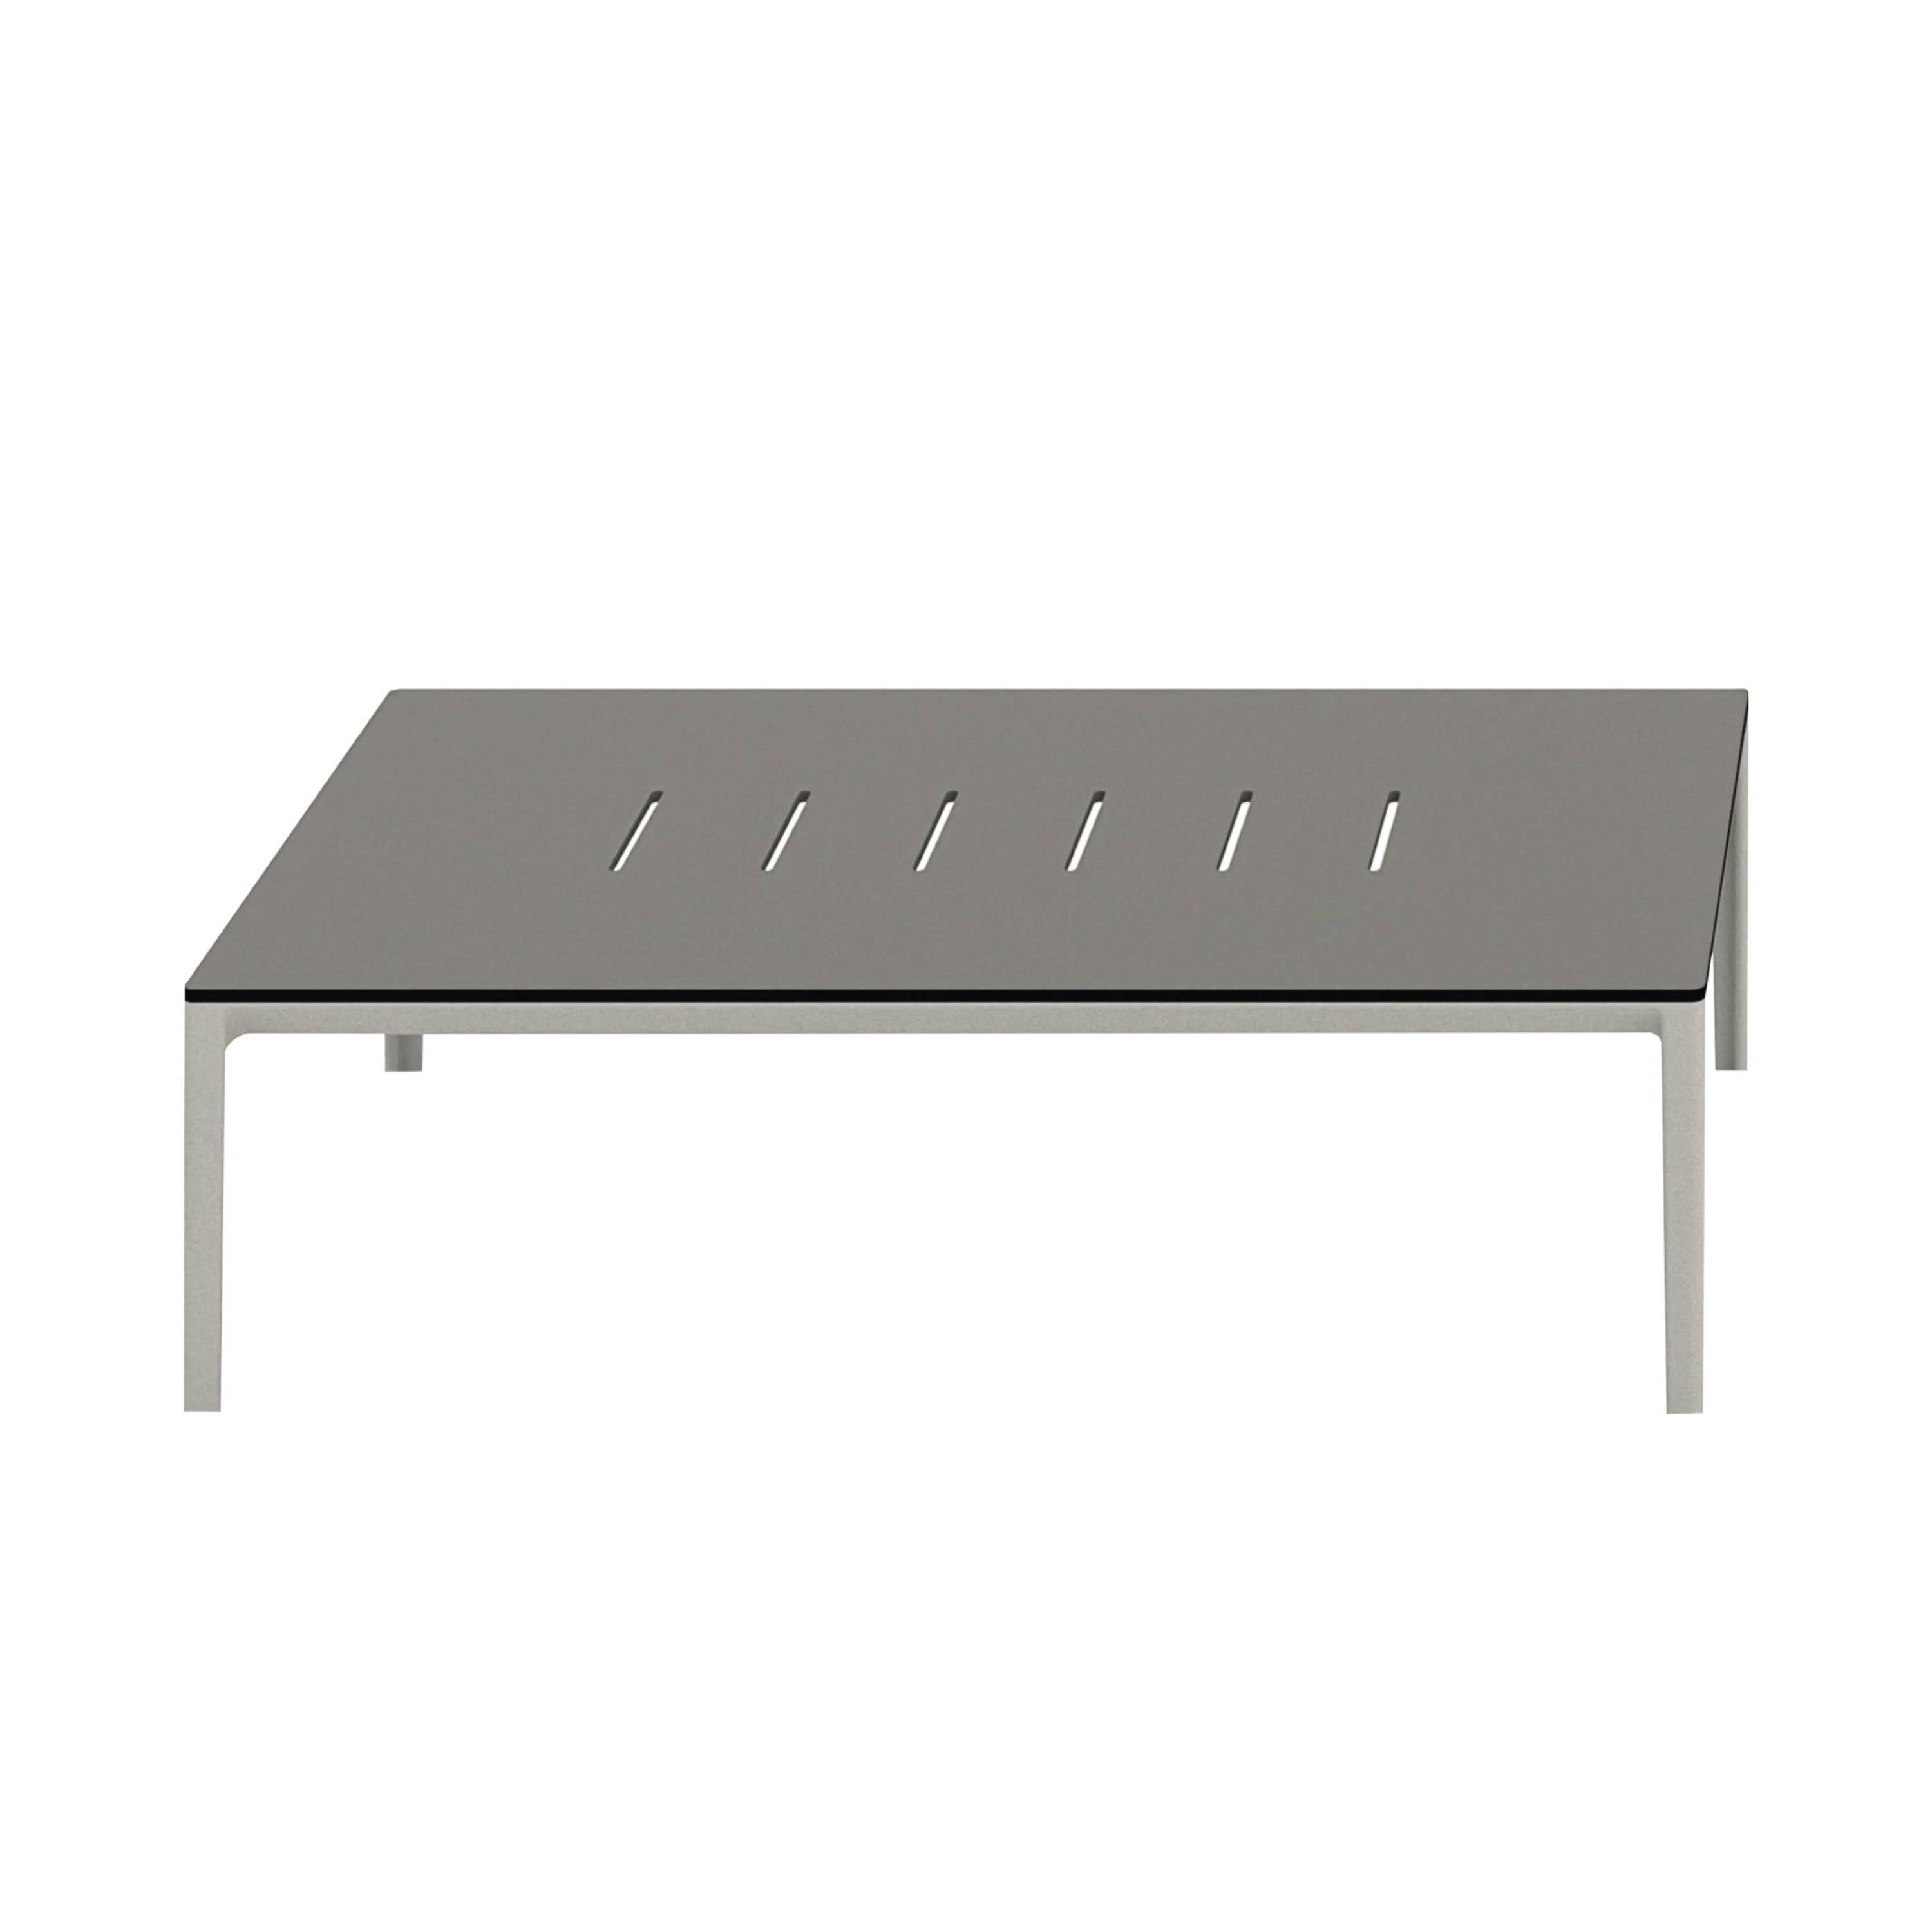 Outdoor Able Low Table: Rectangle + Polaris Gray